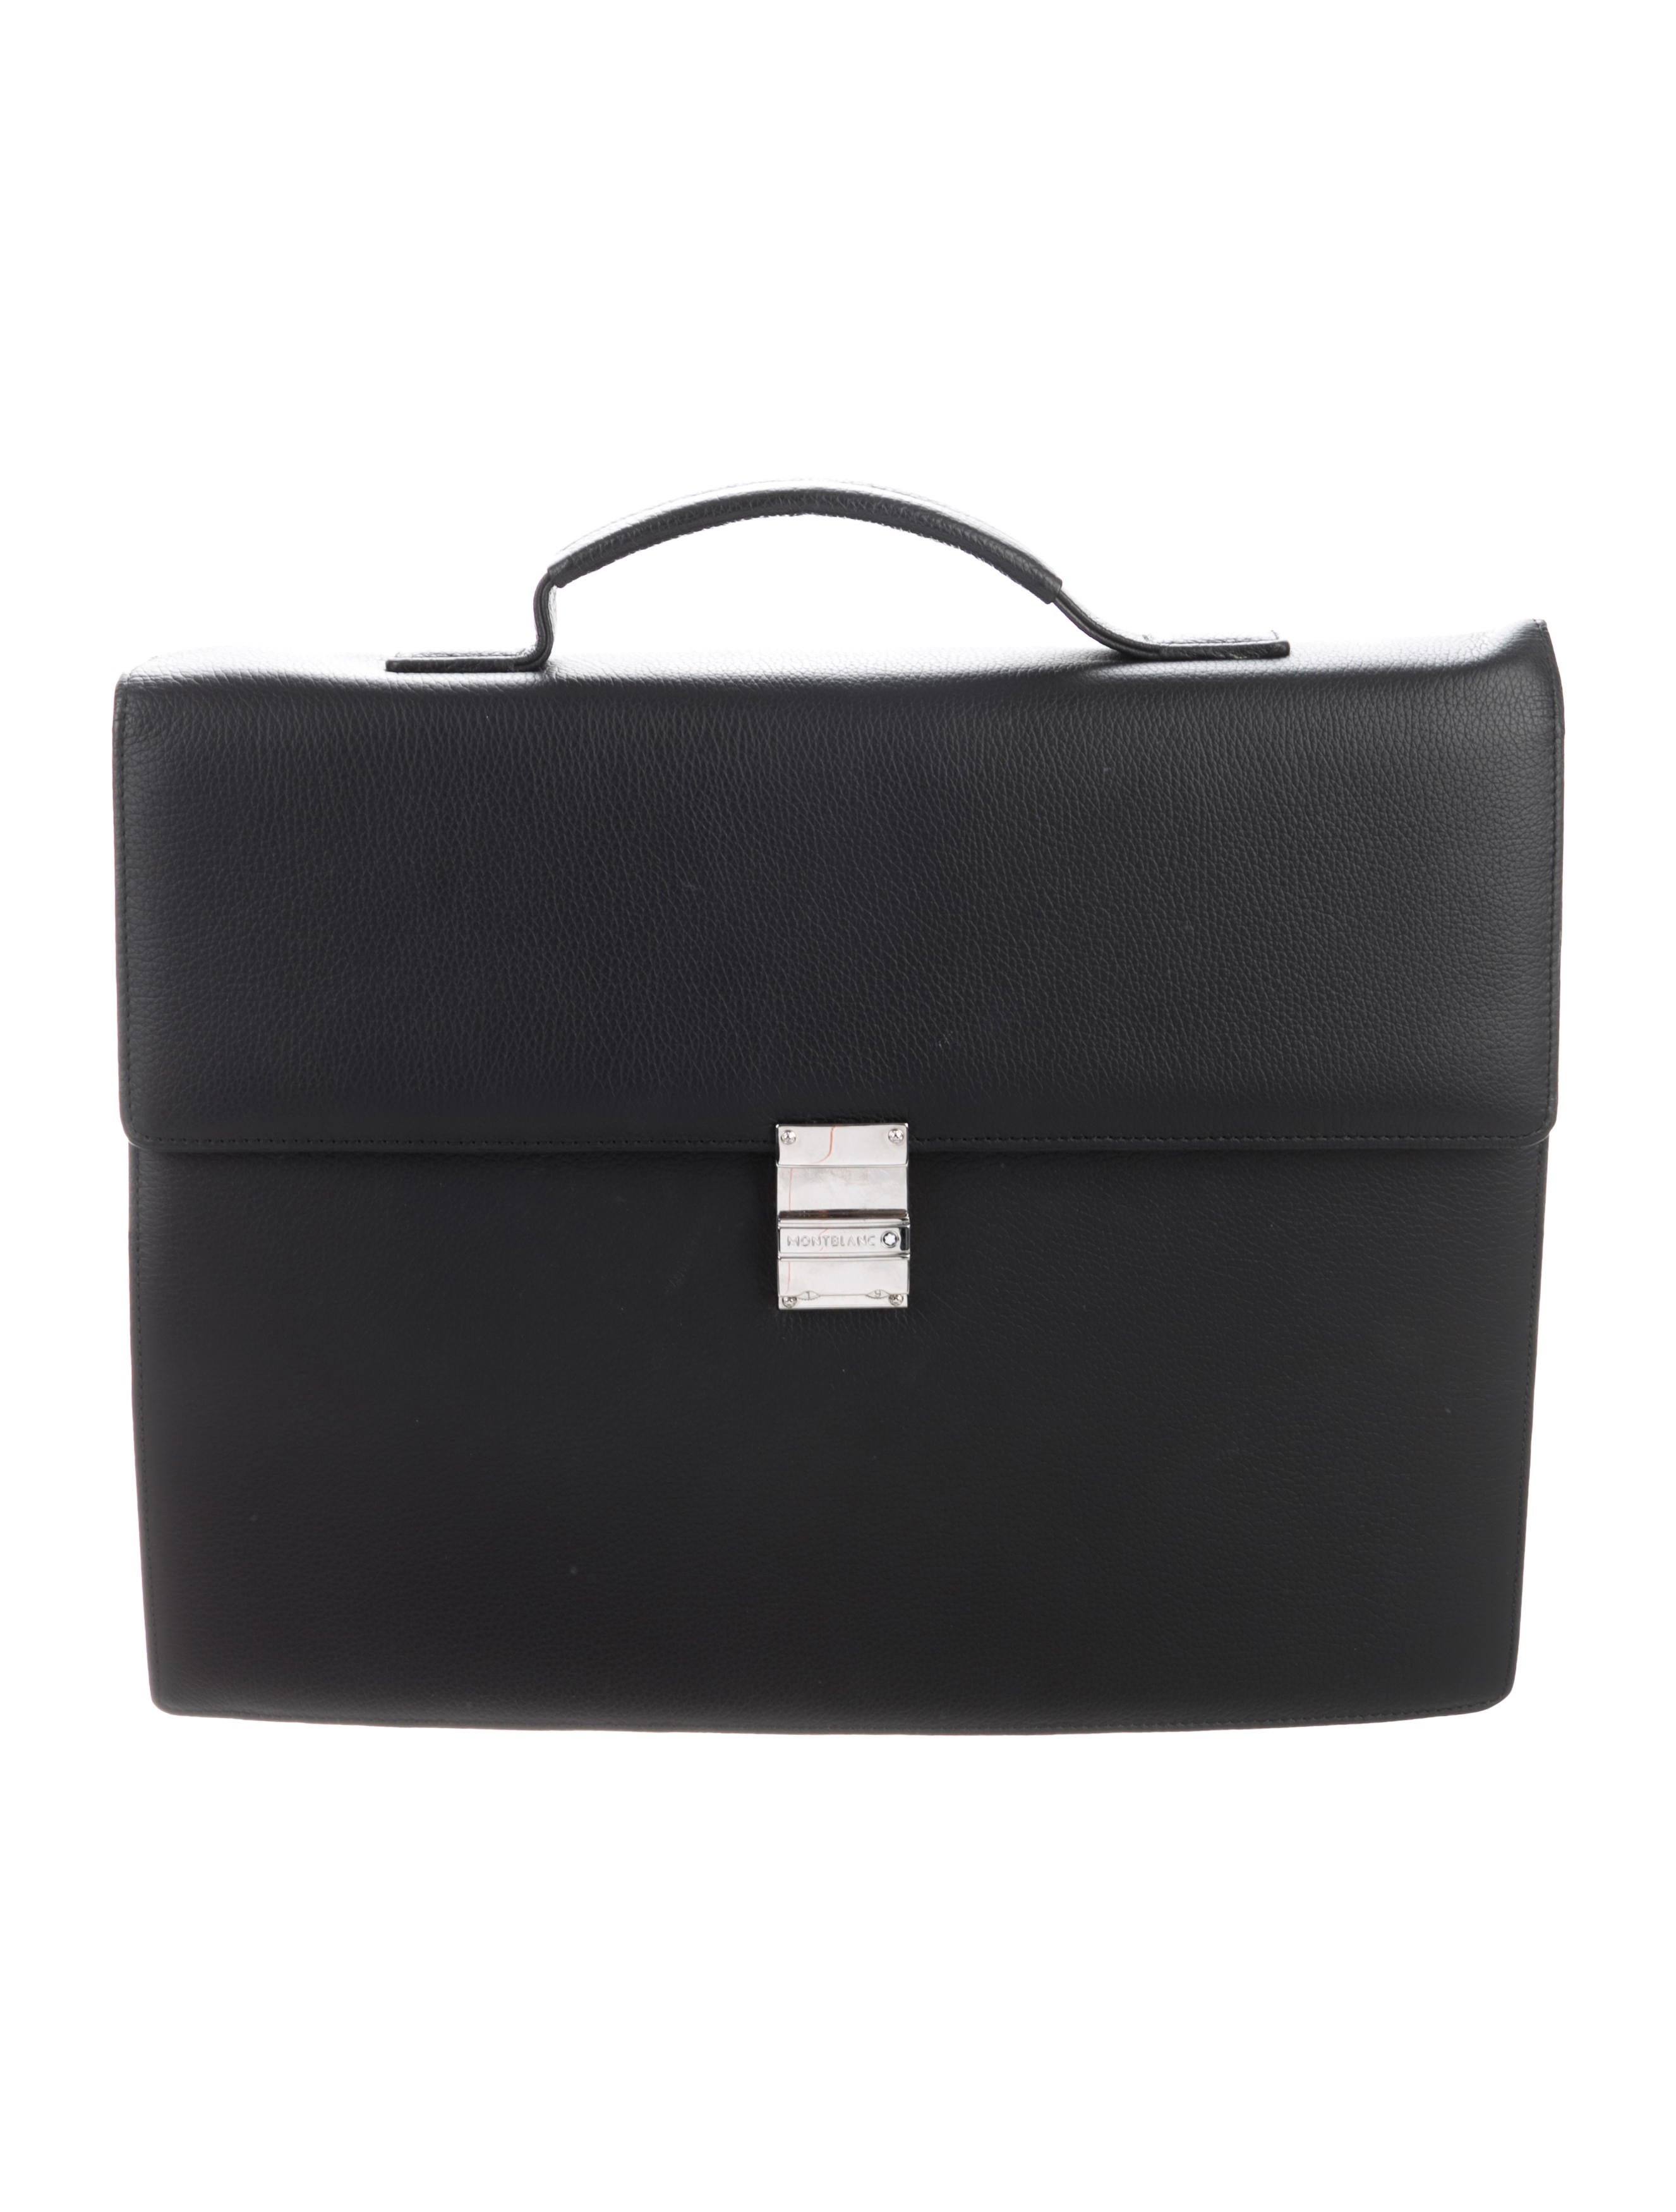 4200ca1c57 Montblanc Meisterstück Leather Briefcase - Bags - MBL23275 | The ...